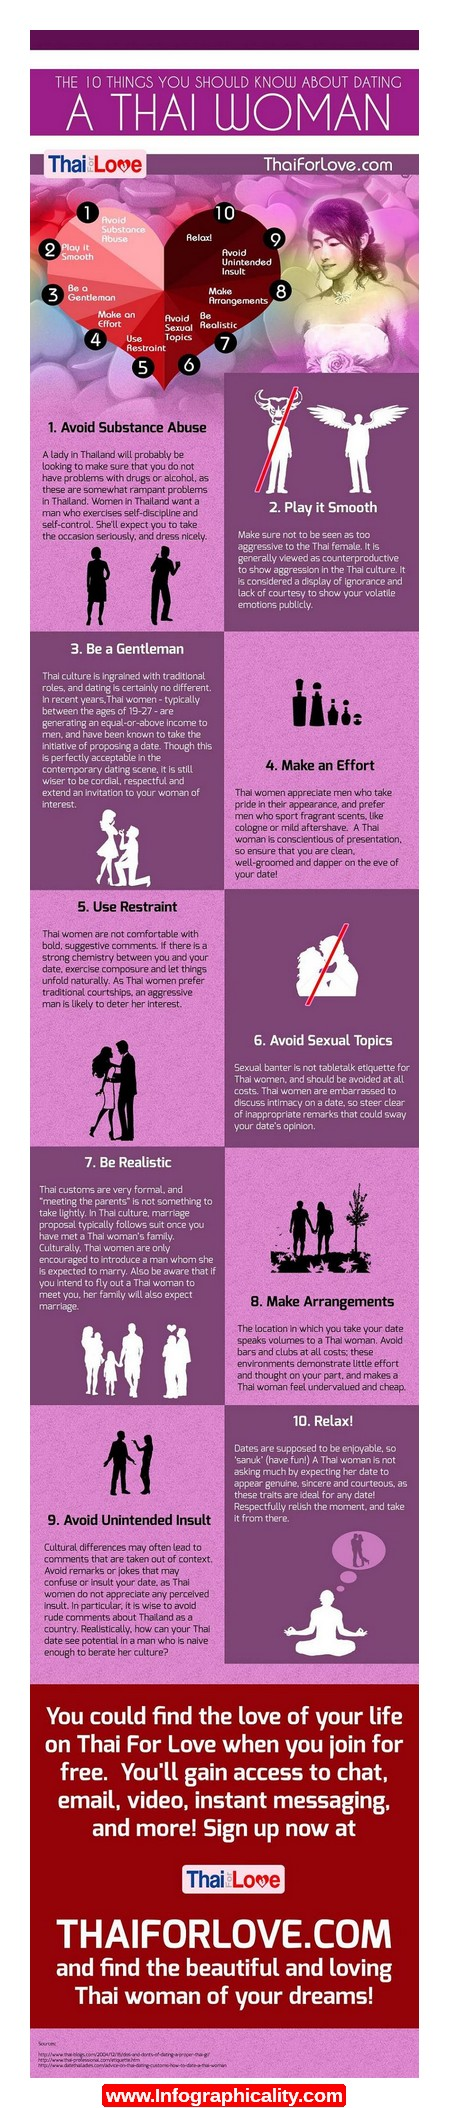 Thaiforlove Infographic - http://infographicality.com/thaiforlove-infographic/